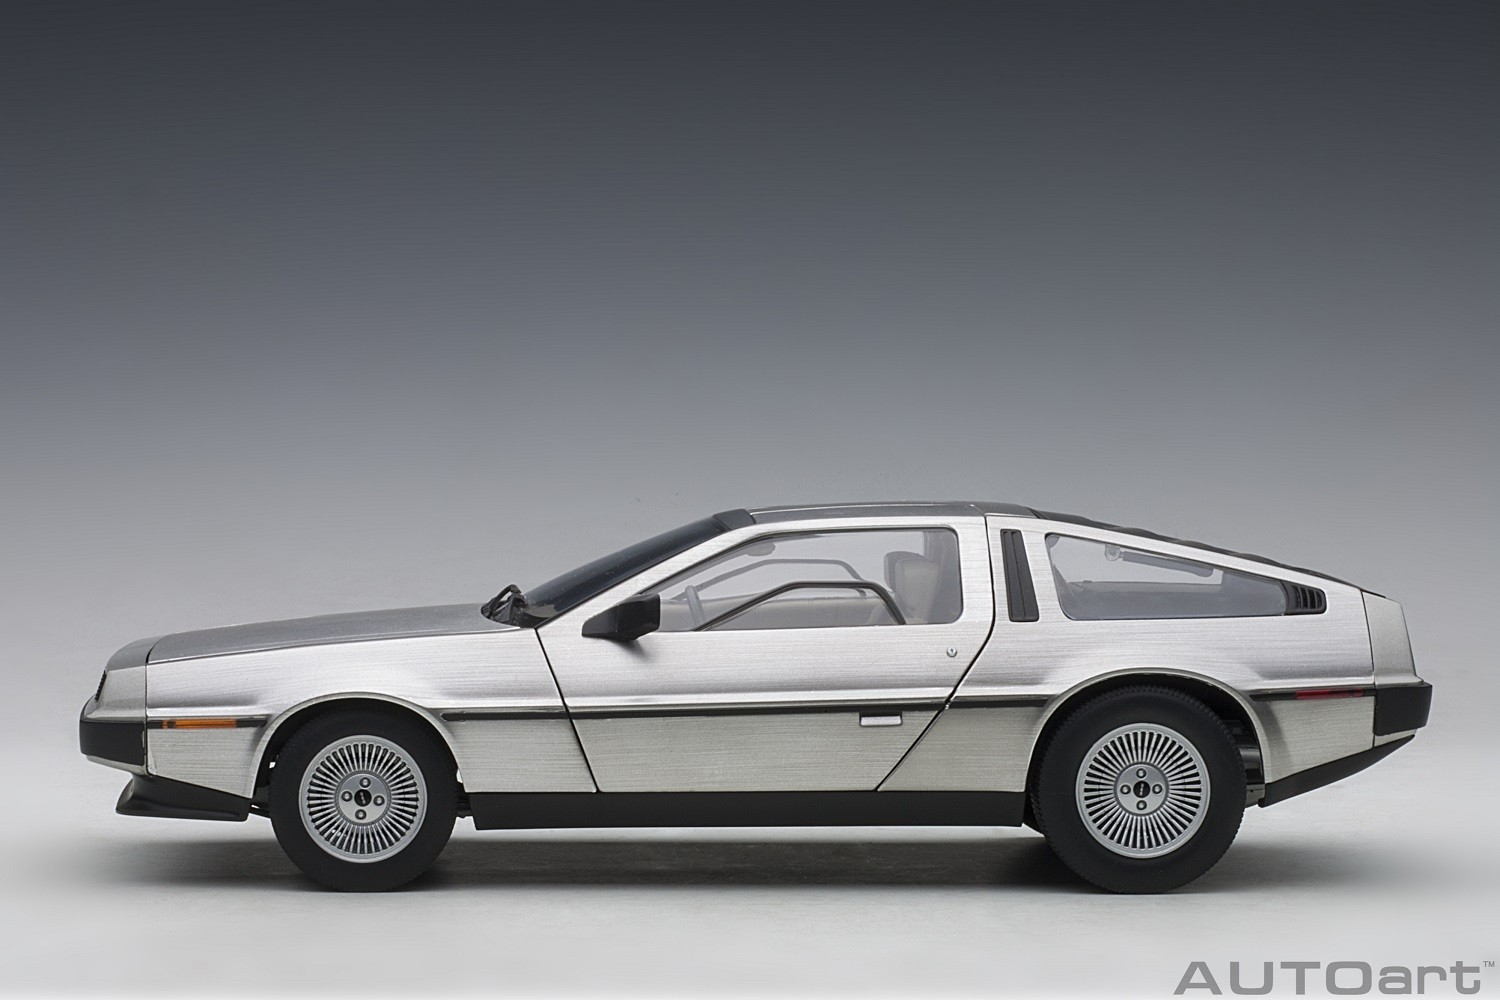 Click image for larger version.  Name:79916_delorean_dmc_12_satin_finish_autoart_die-cast_scale_1-18_side_view.jpg Views:28 Size:185.0 KB ID:714832